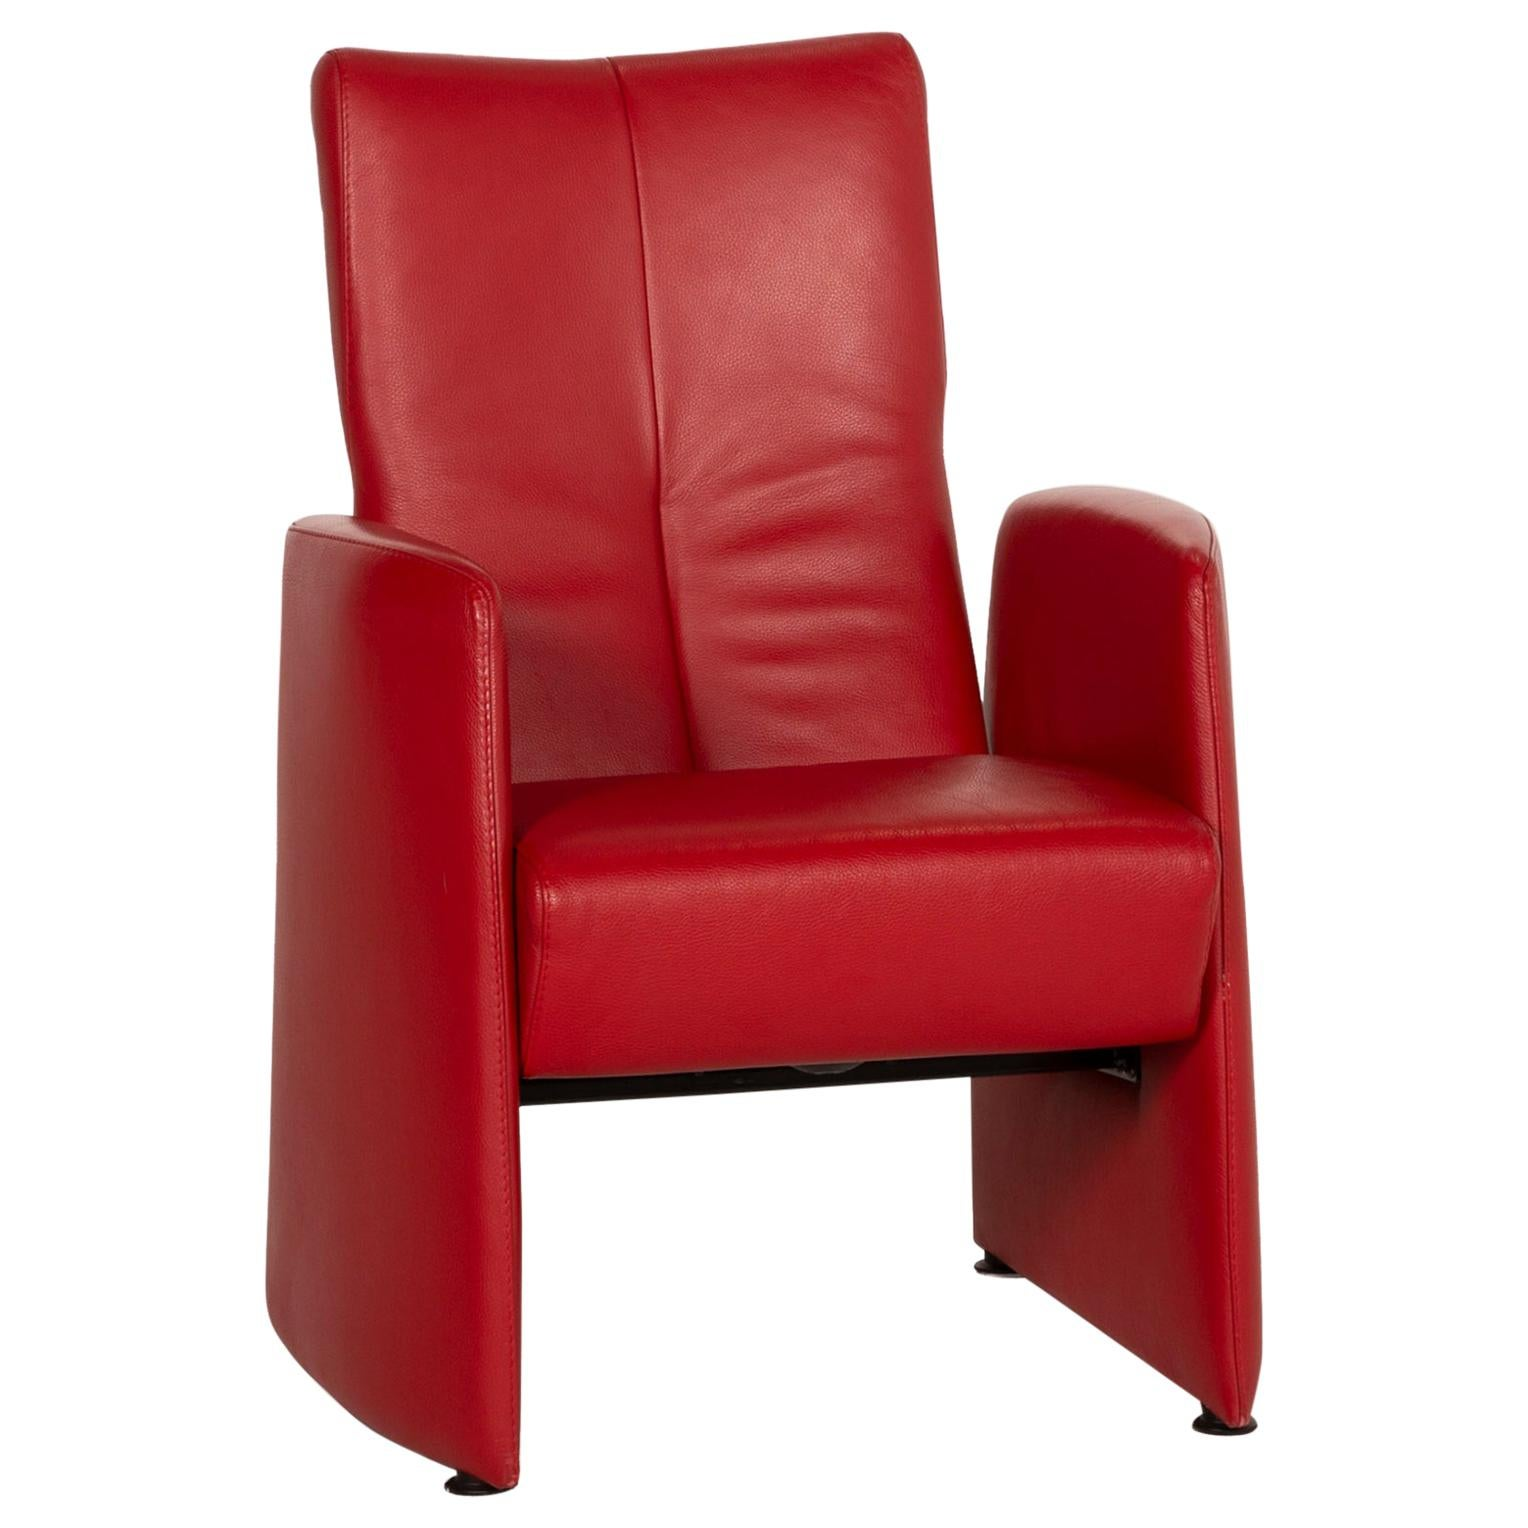 Leolux Leather Armchair Red Relaxation Function